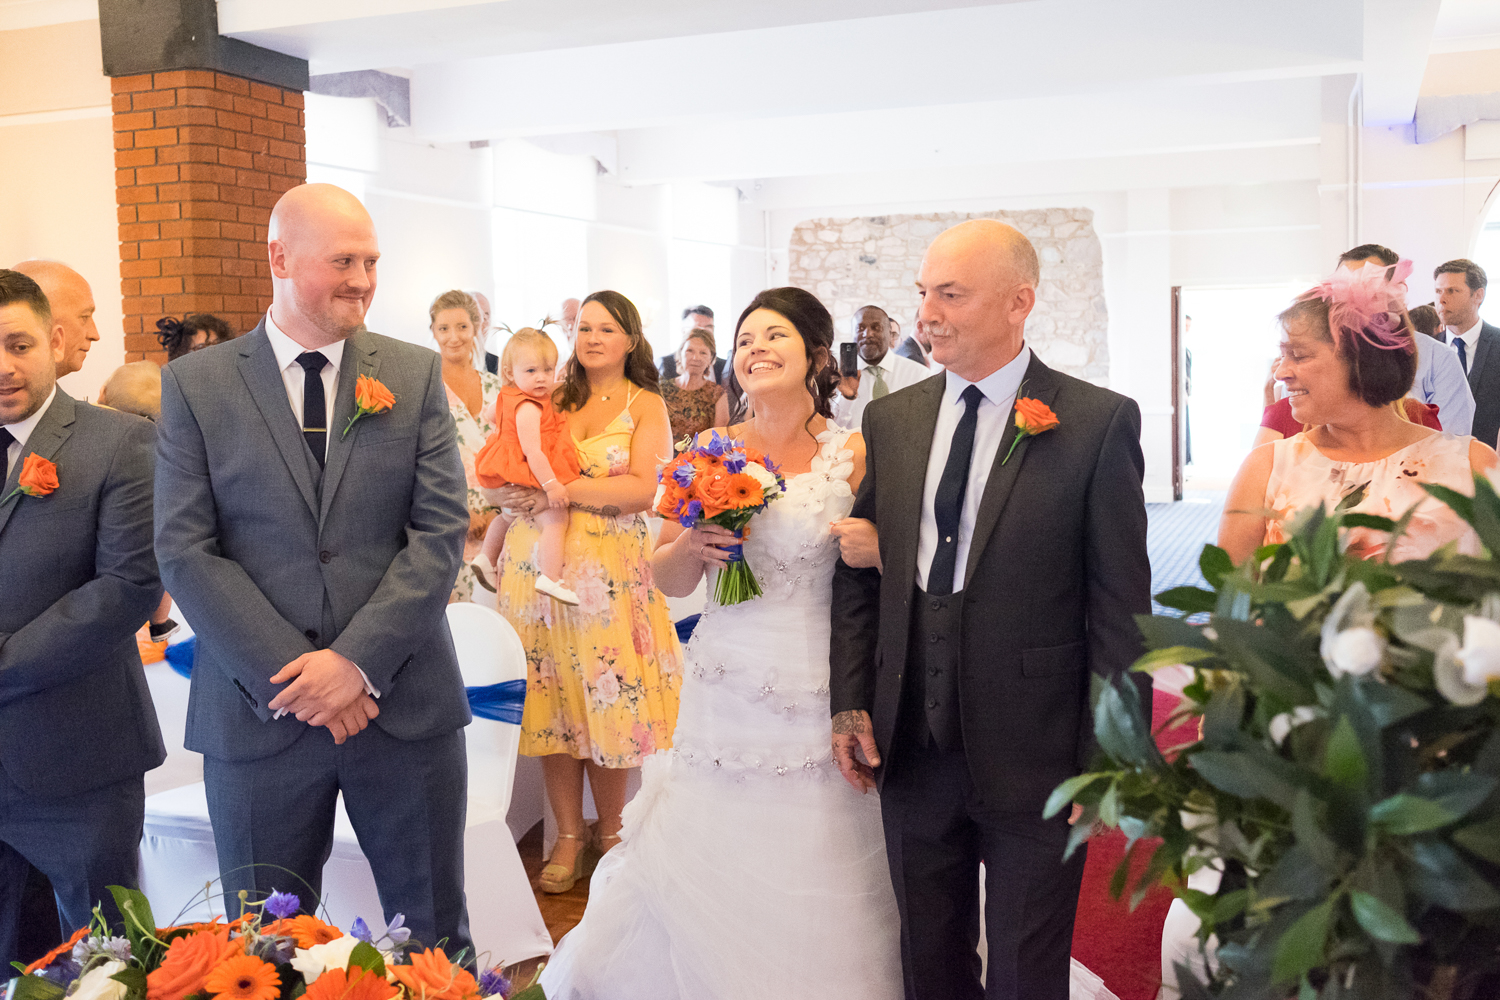 walking down the aisle at The Lord Haldon Hotel in Devon